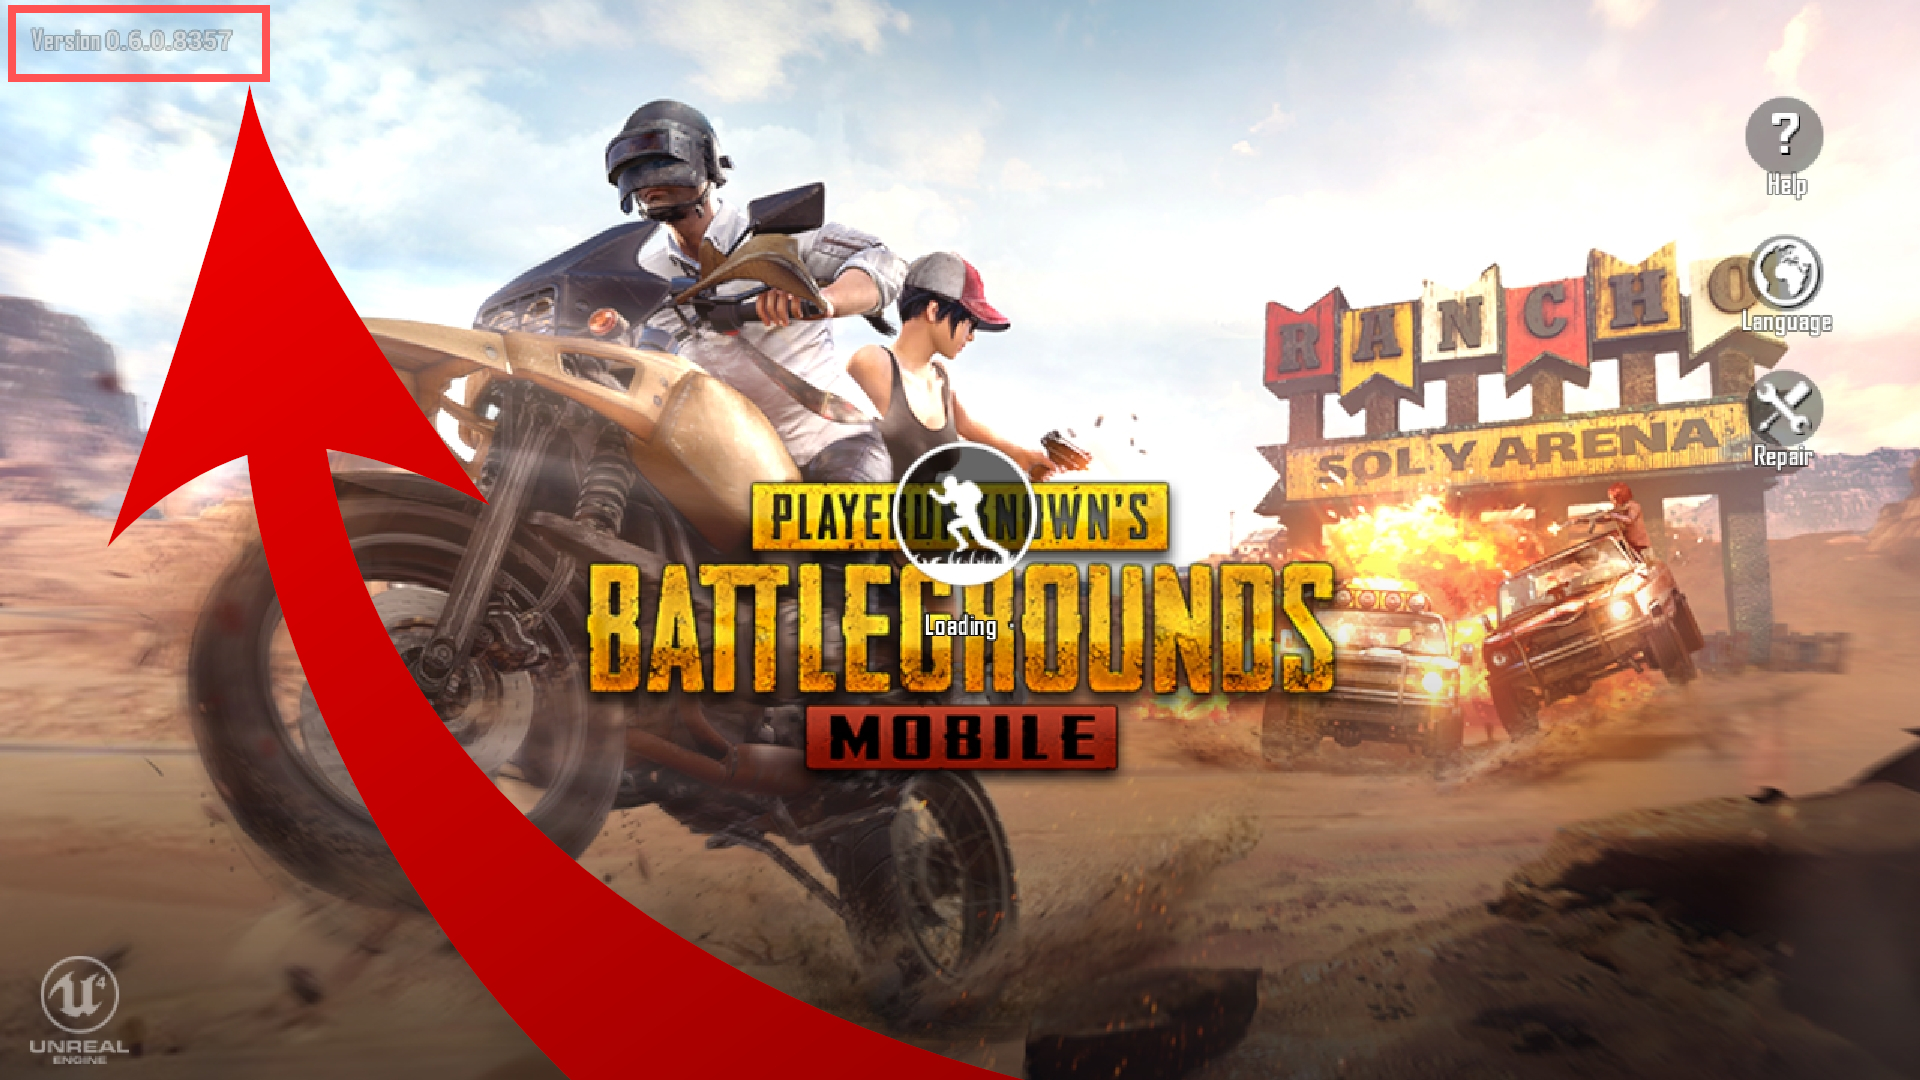 How To Improve The Graphics In Pubg Mobile With The App: Improve PUBG FPS Performance On Android With GFX Tool